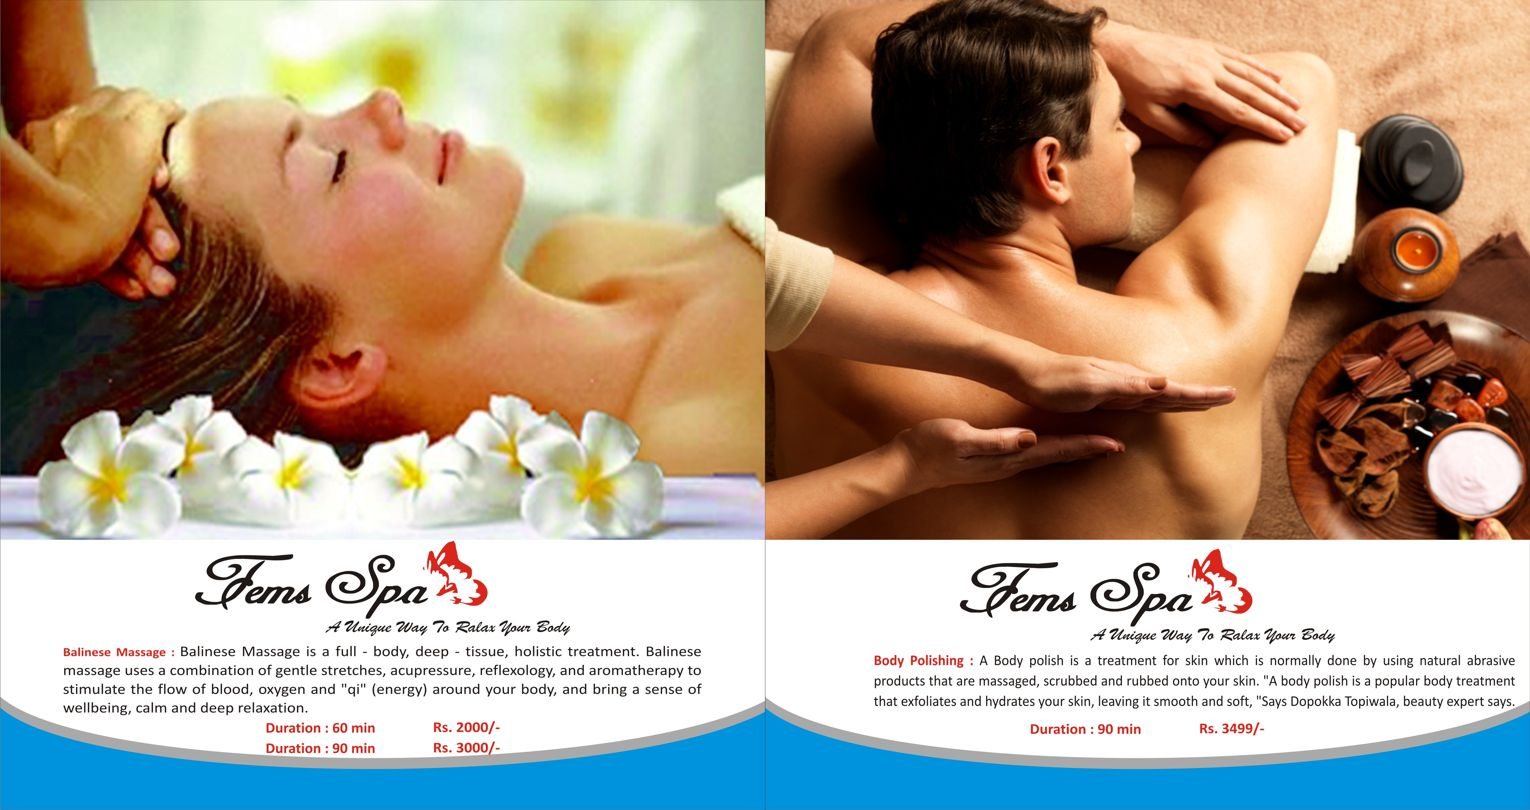 Balinese Massage and Body Polishing in Kotla Defence Colony South Extension Delhi NCR - Fems Spa - Spas and Salons India